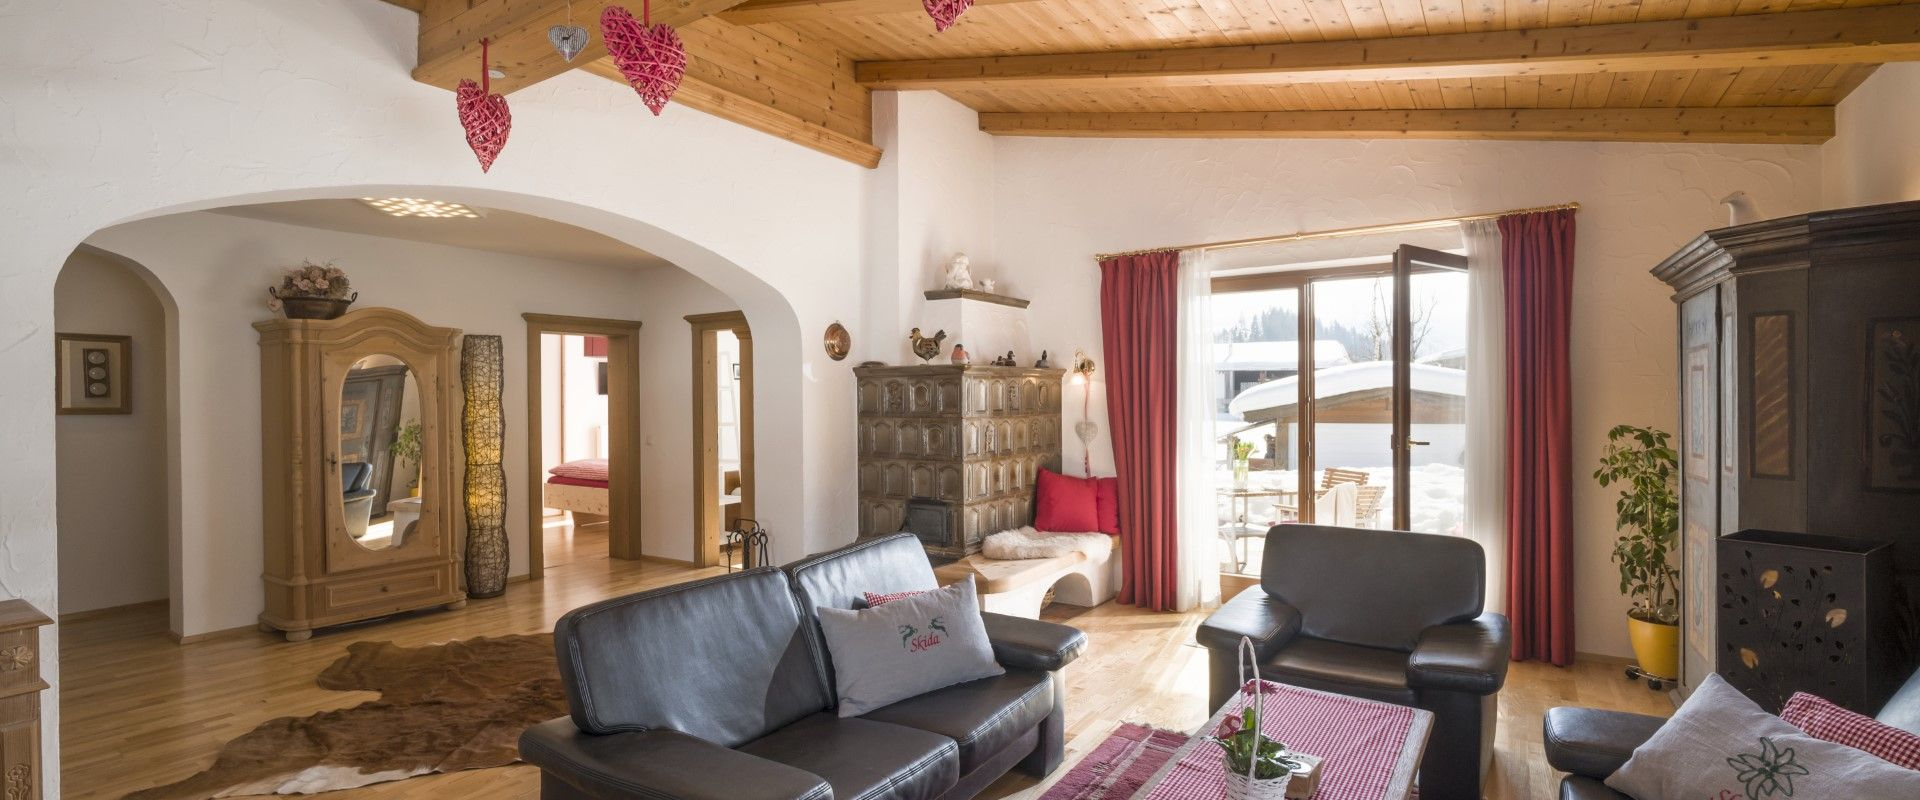 Urlaub In Kitzbuehel Appartement 1